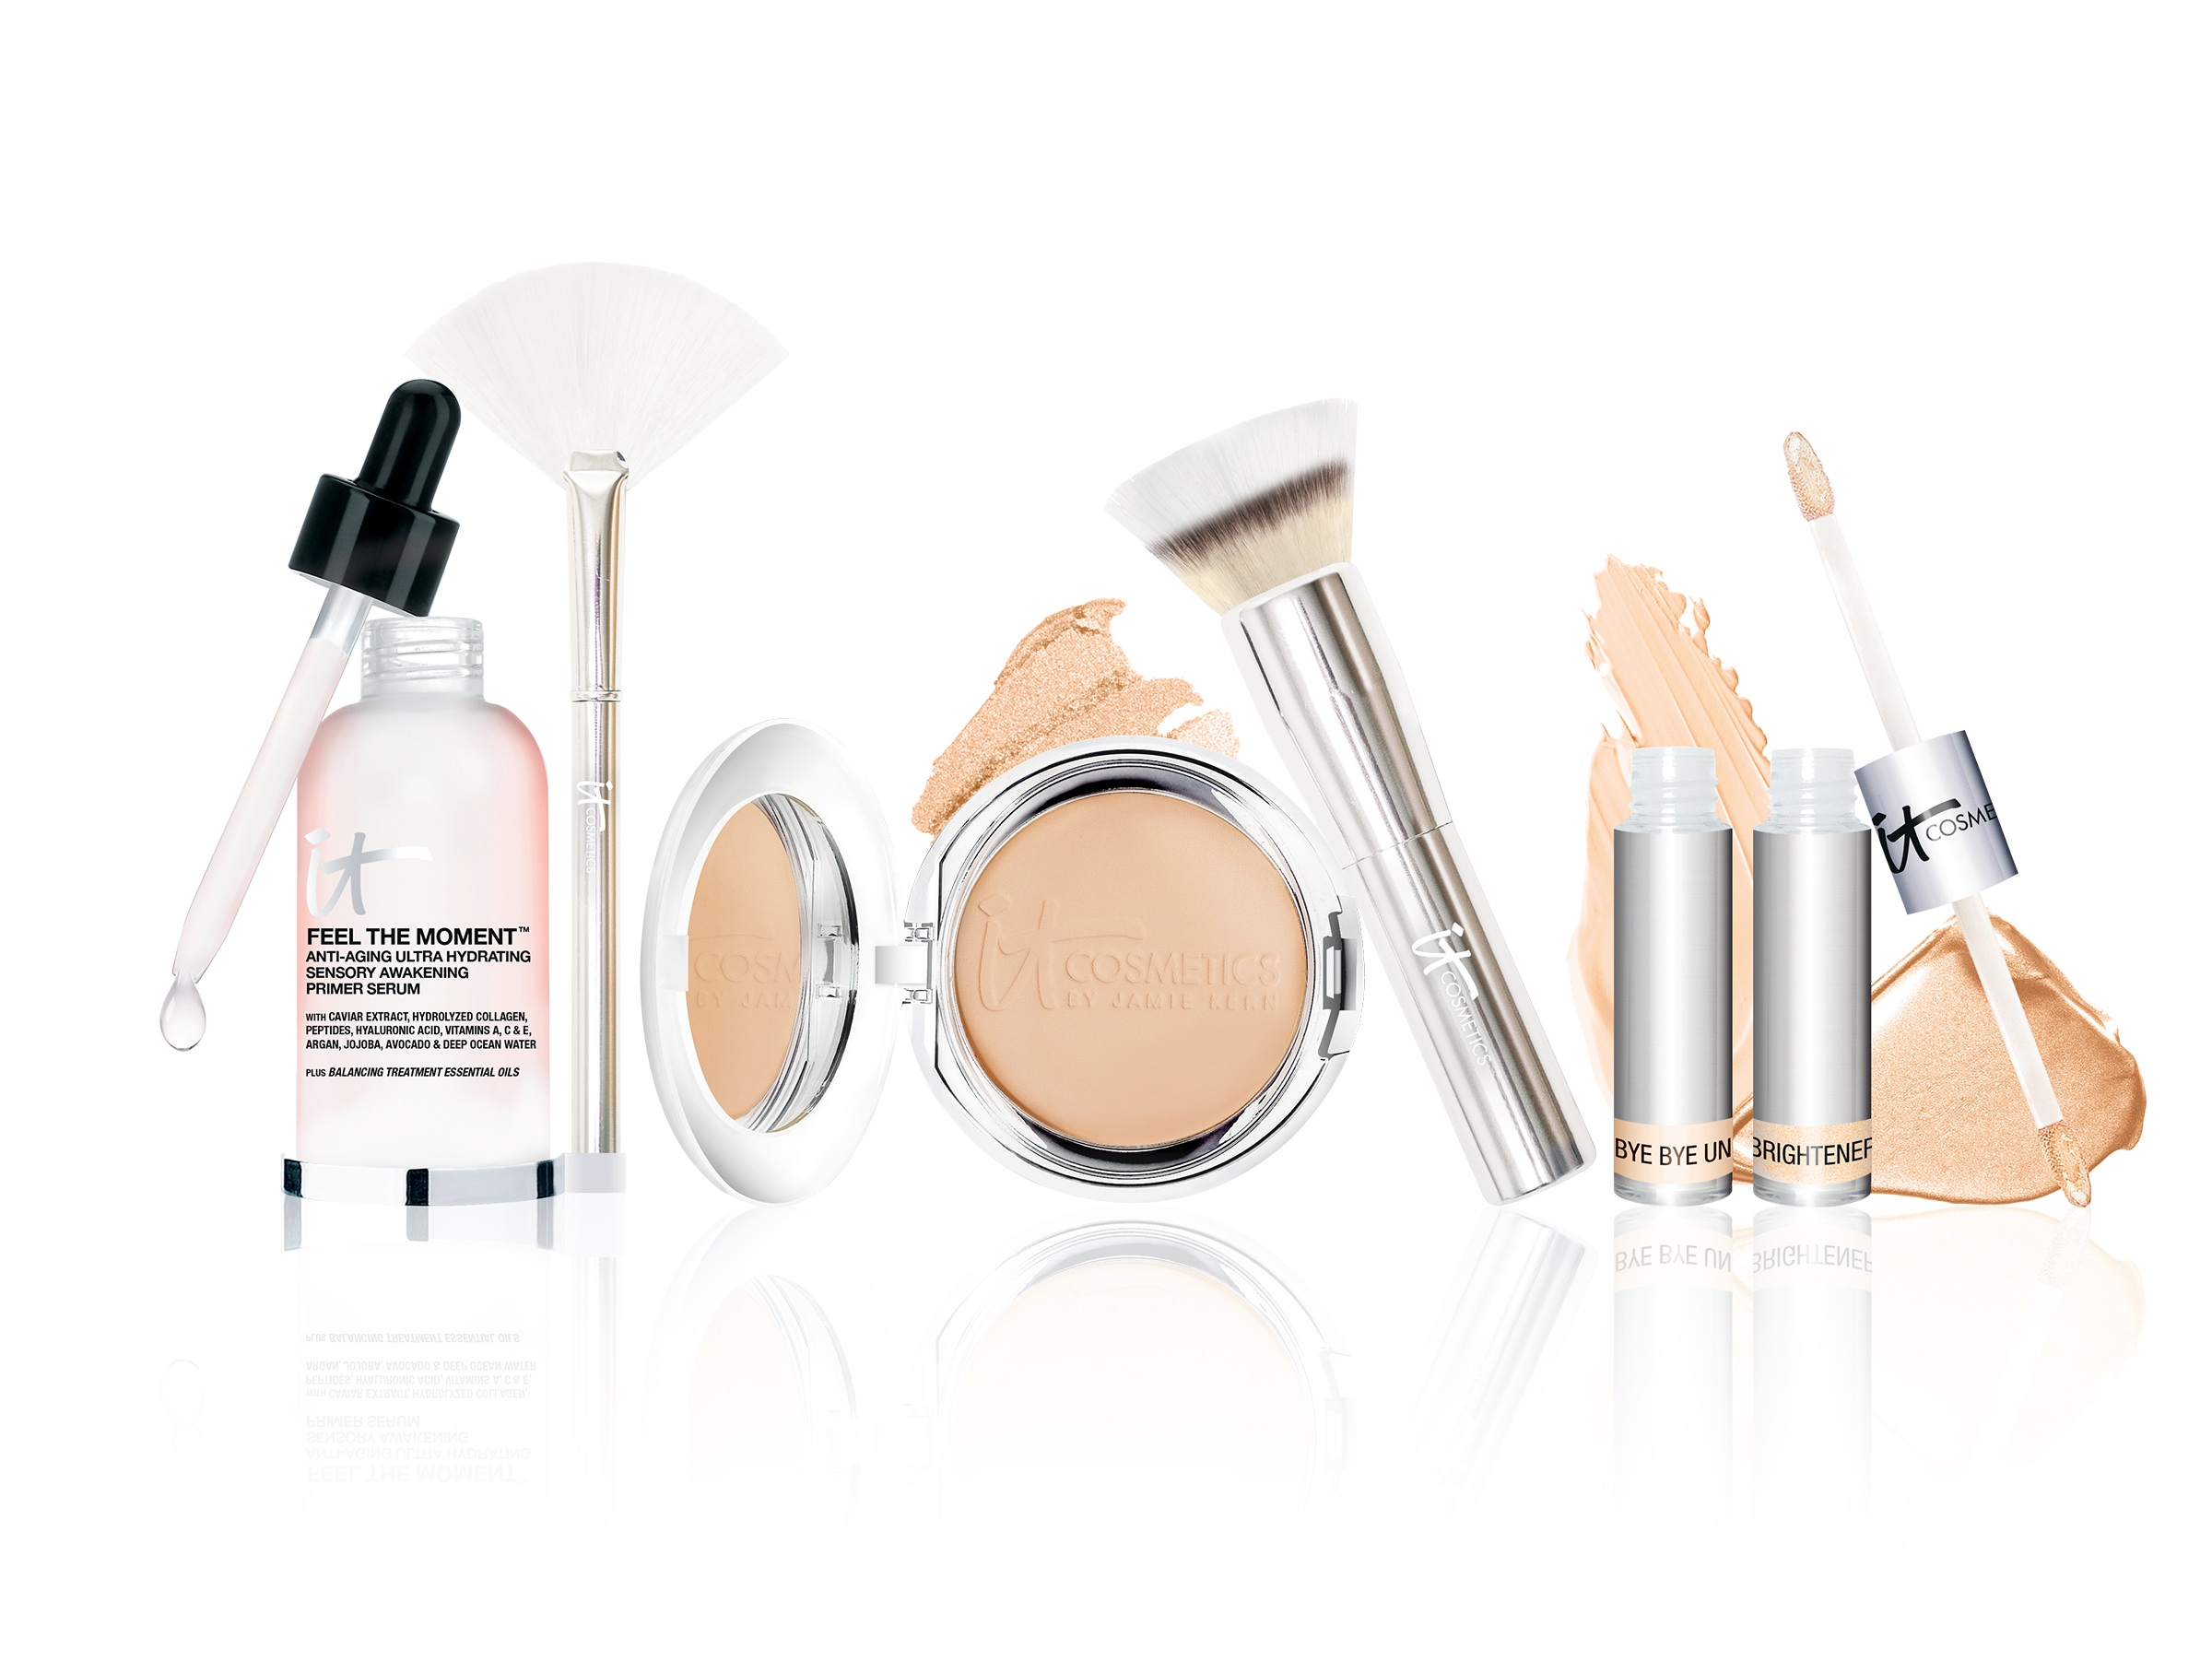 New Year's Beauty Resolutions – Adding Makeup With a Purpose, iT Cosmetics